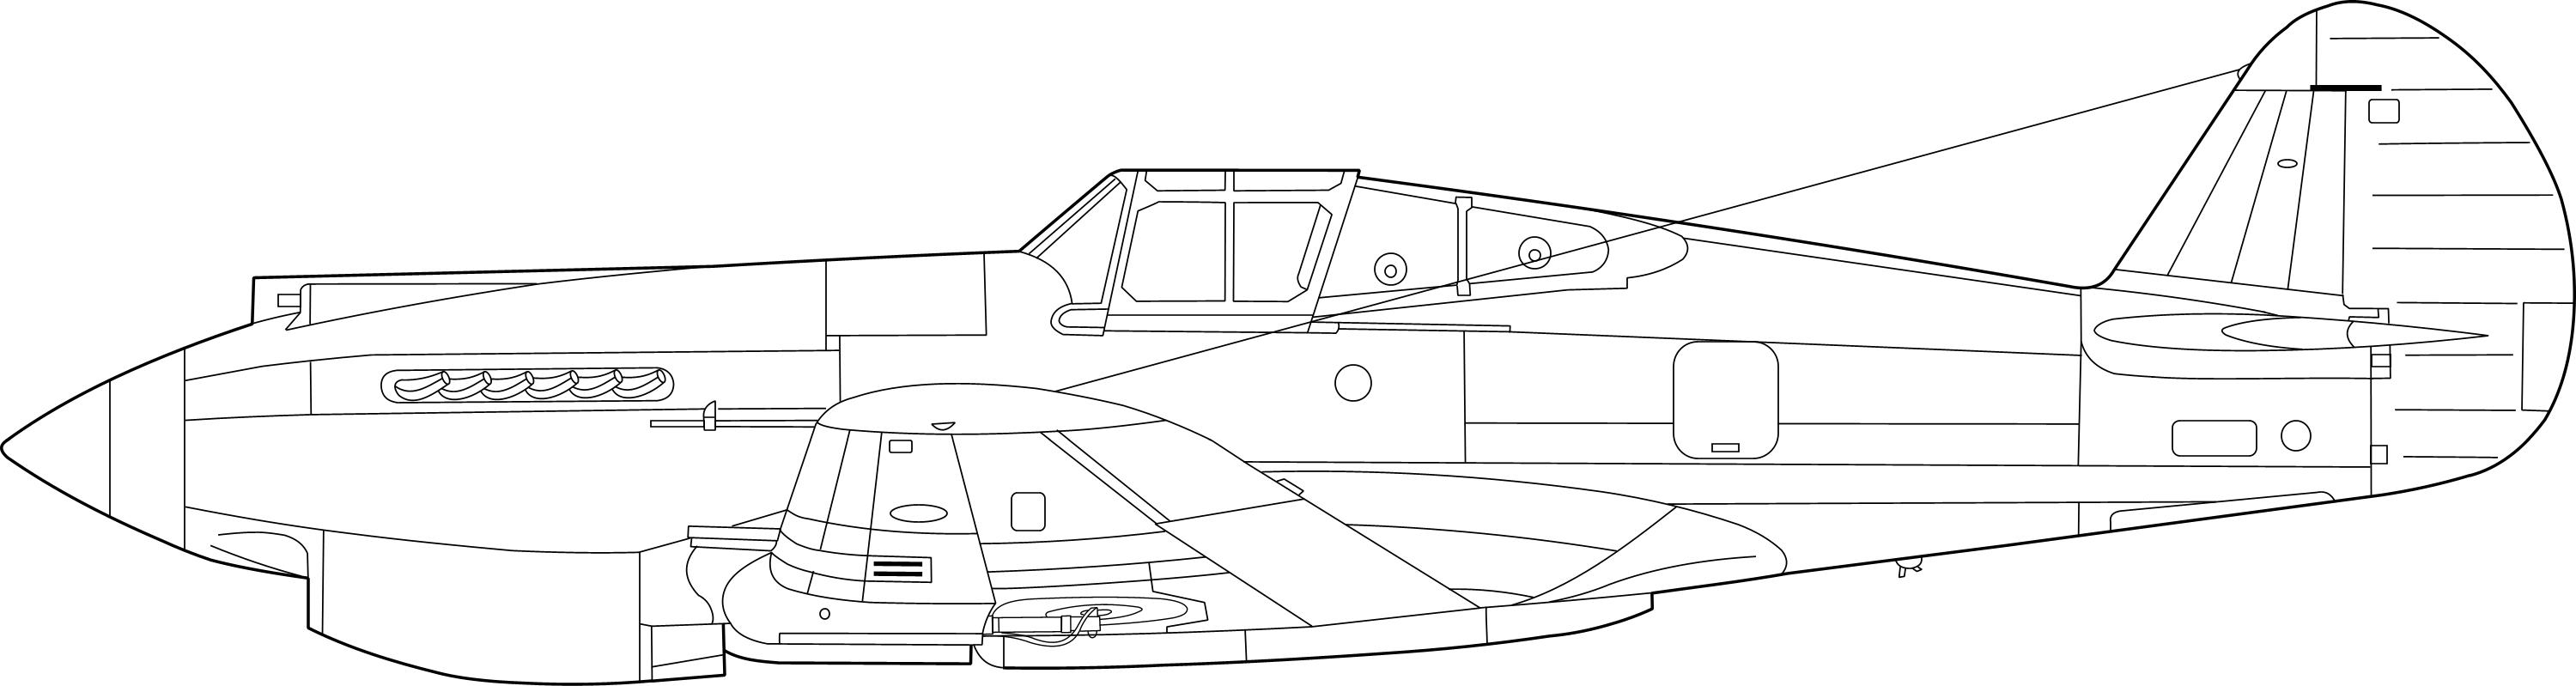 Curtiss P-40 Warhawk blueprint